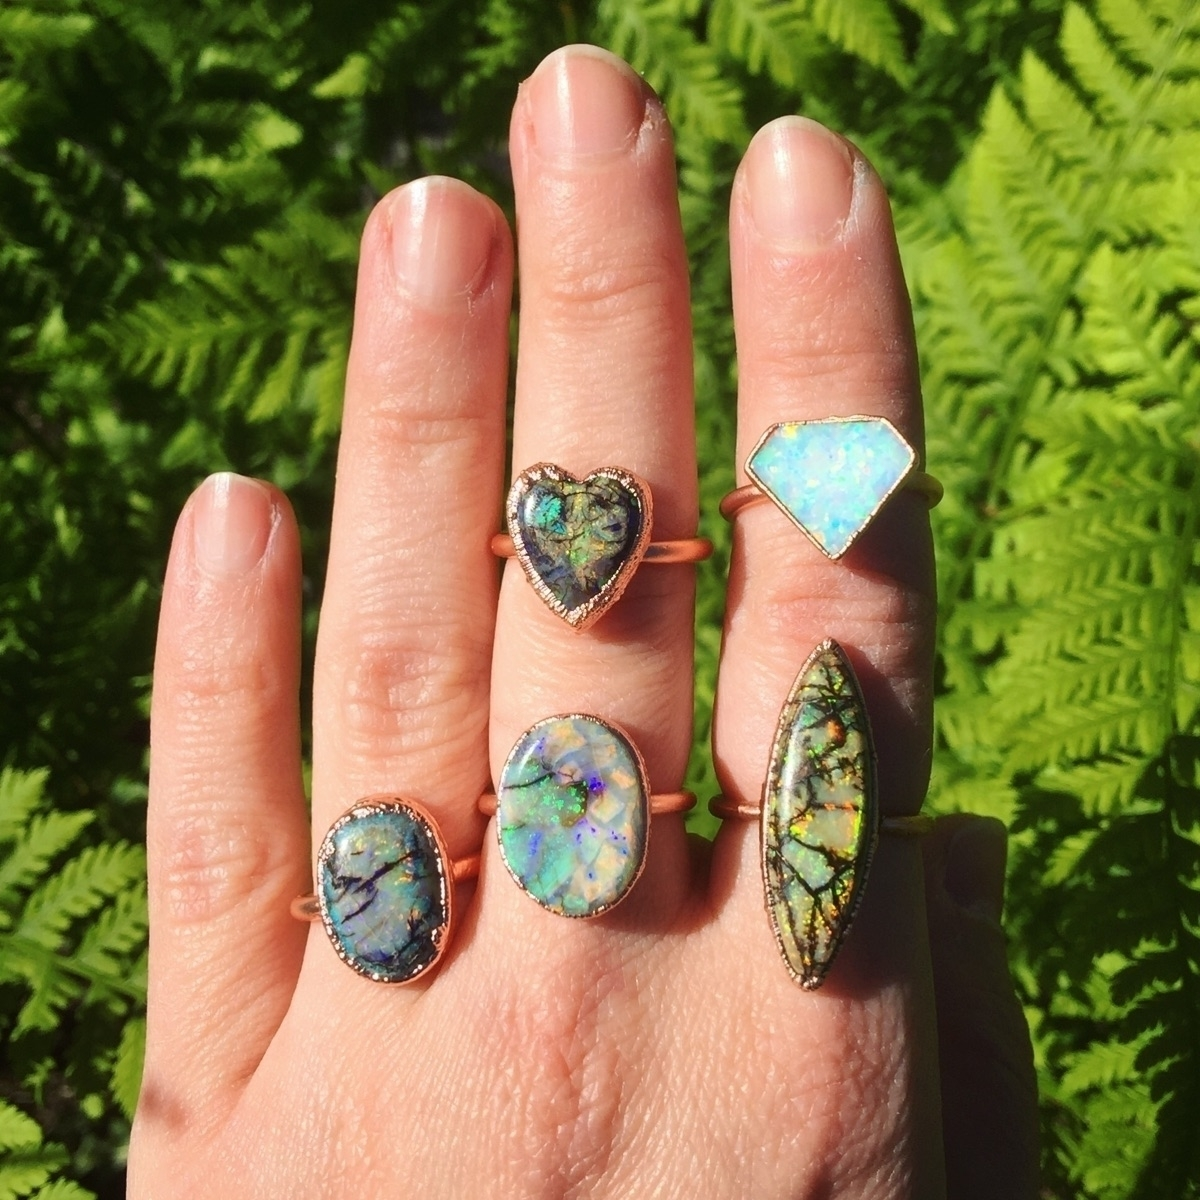 monet pixie opal rings coming s - citrinevail | ello